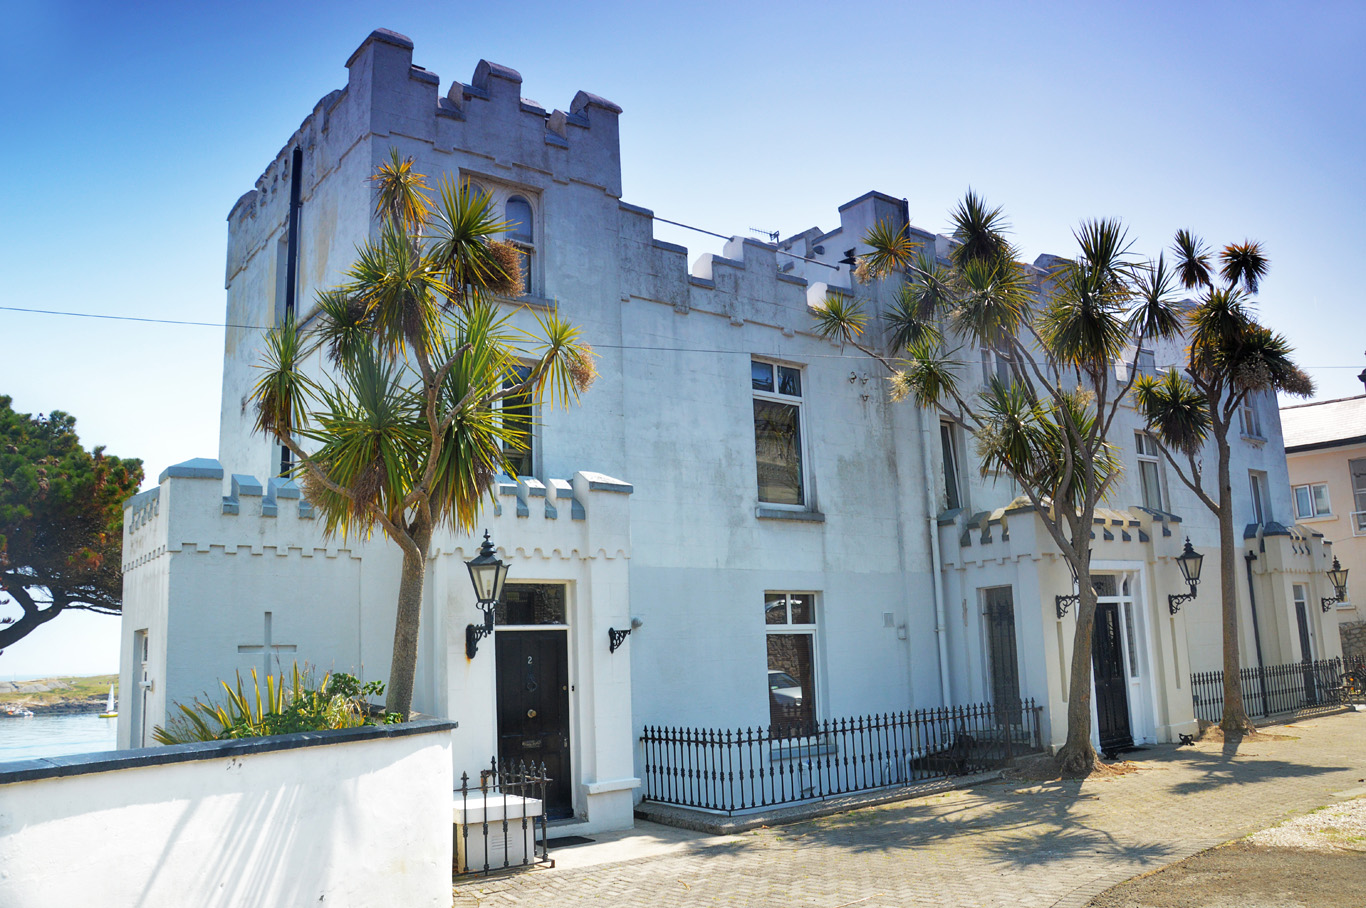 Castle-house and cabbage palm trees (cordyline) in Dalkey